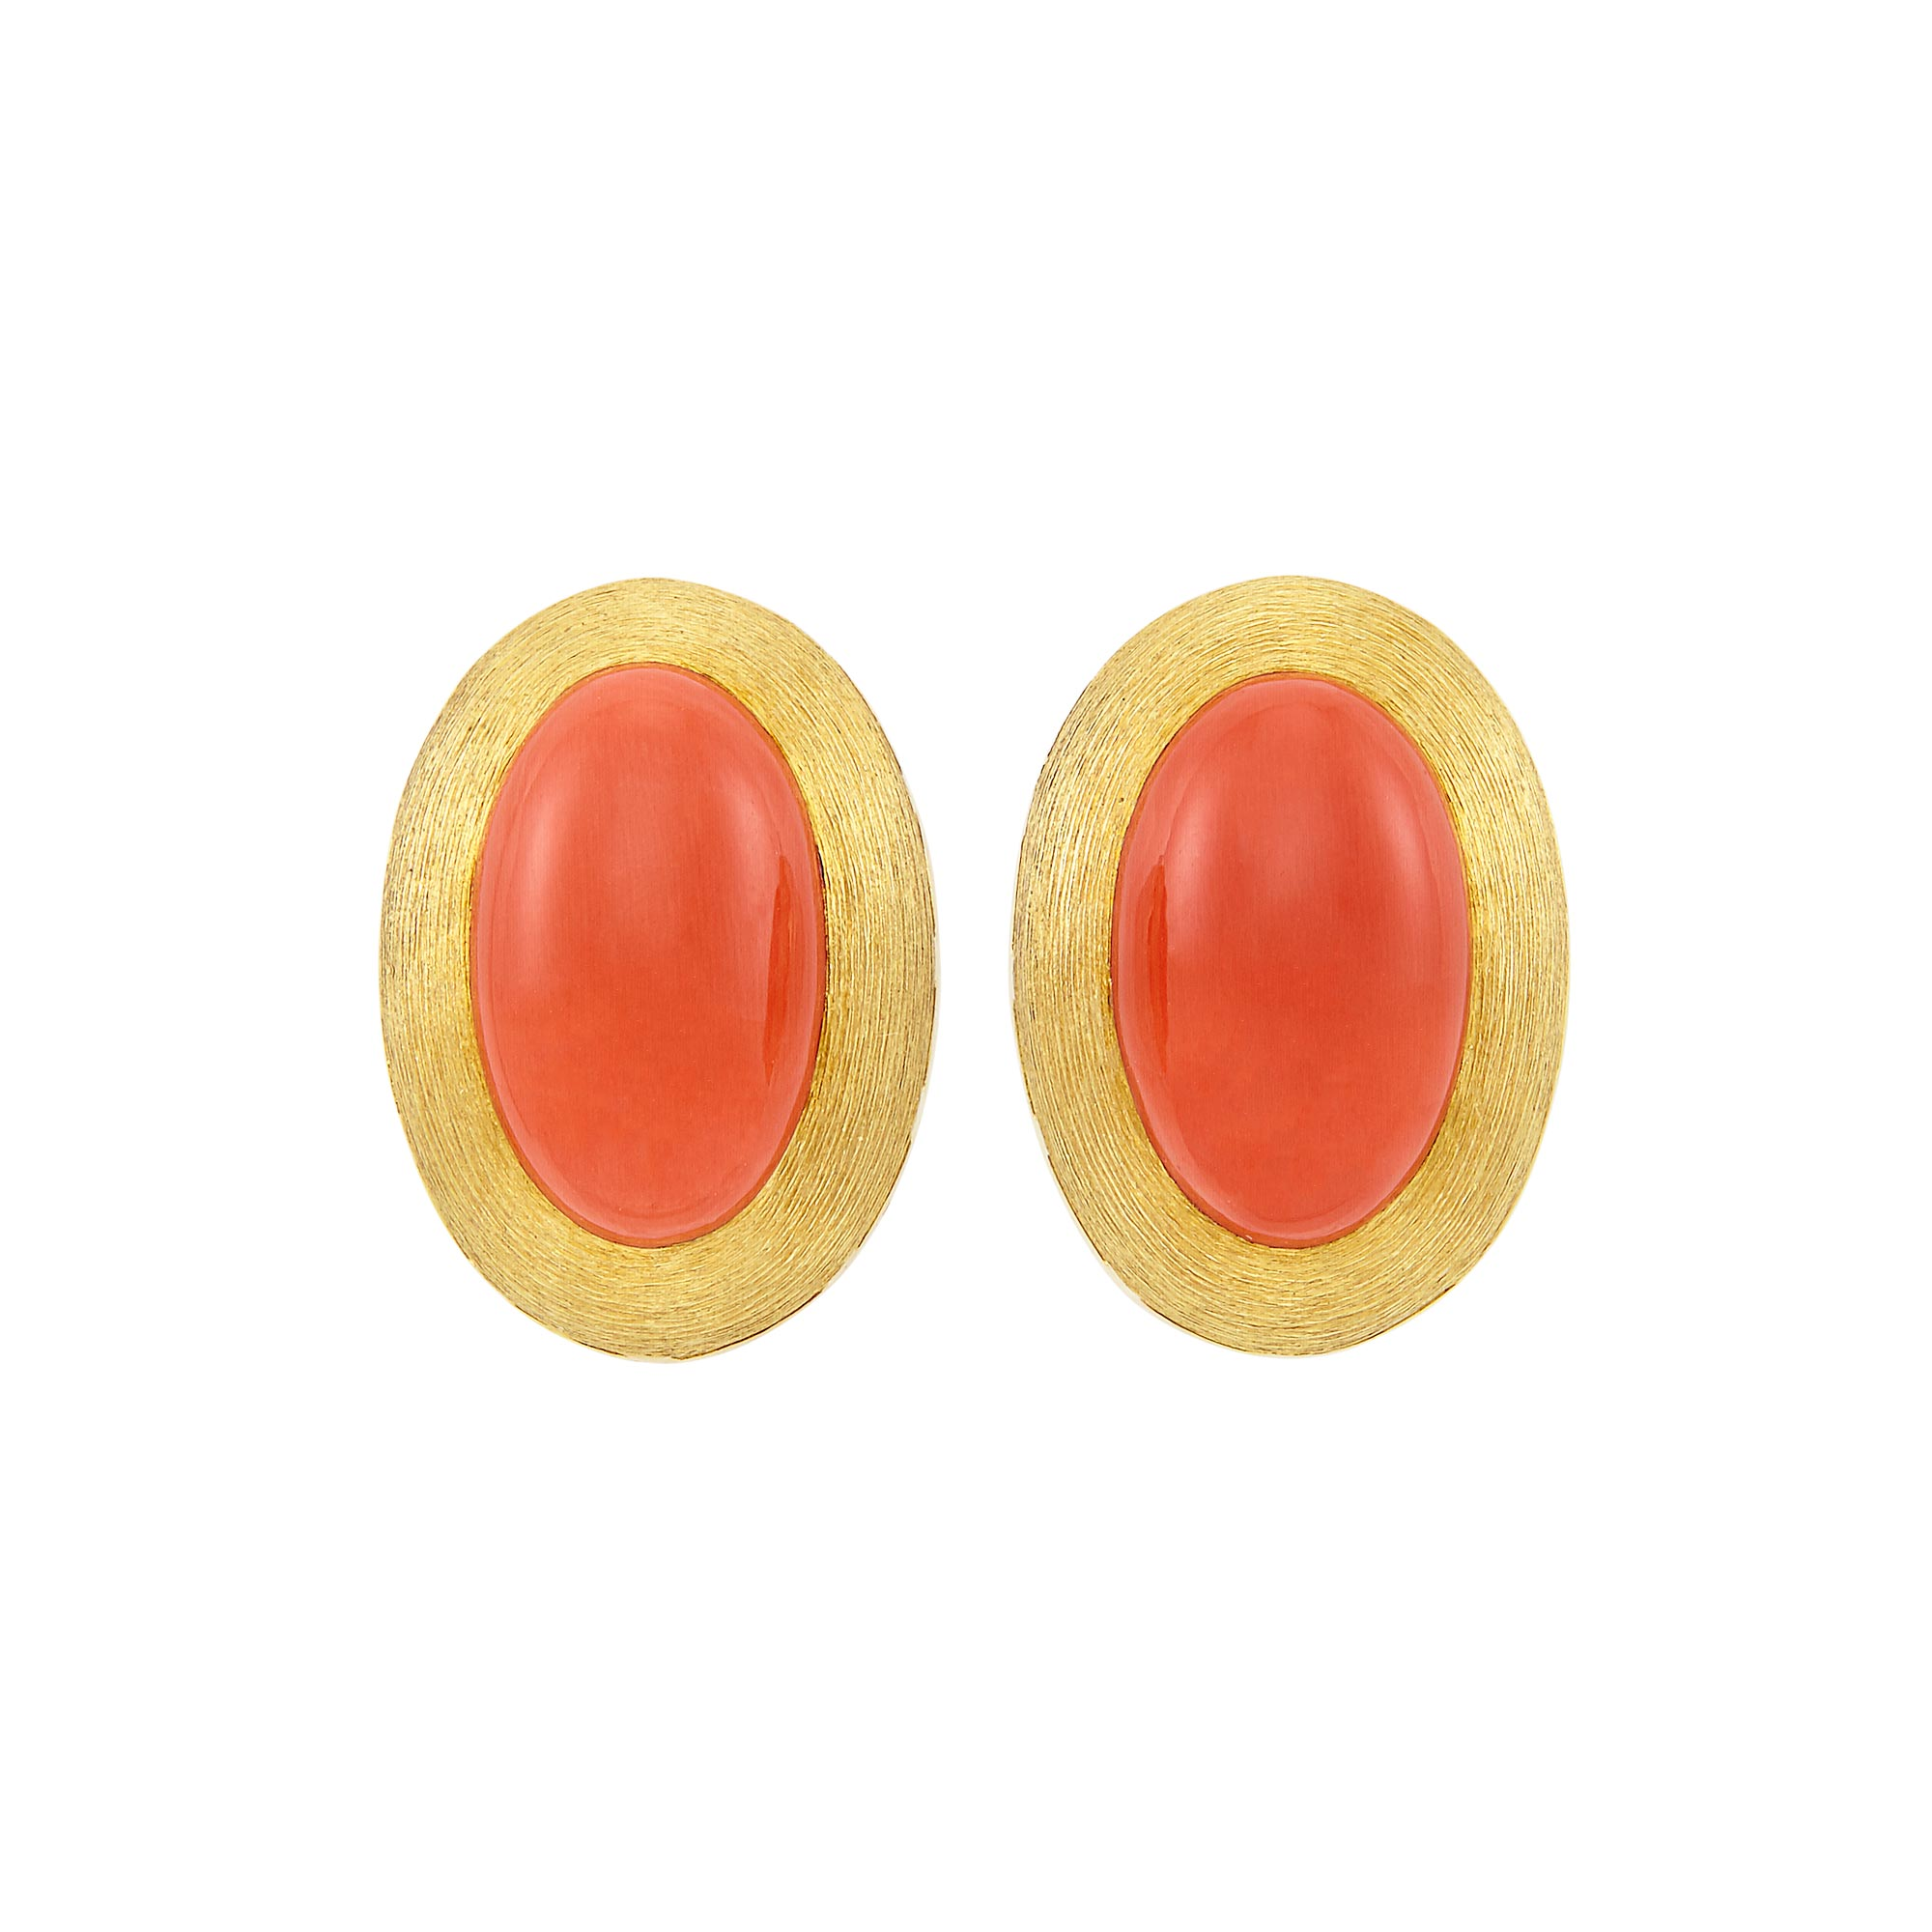 Lot image - Pair of Gold and Coral Earclips, Henry Dunay